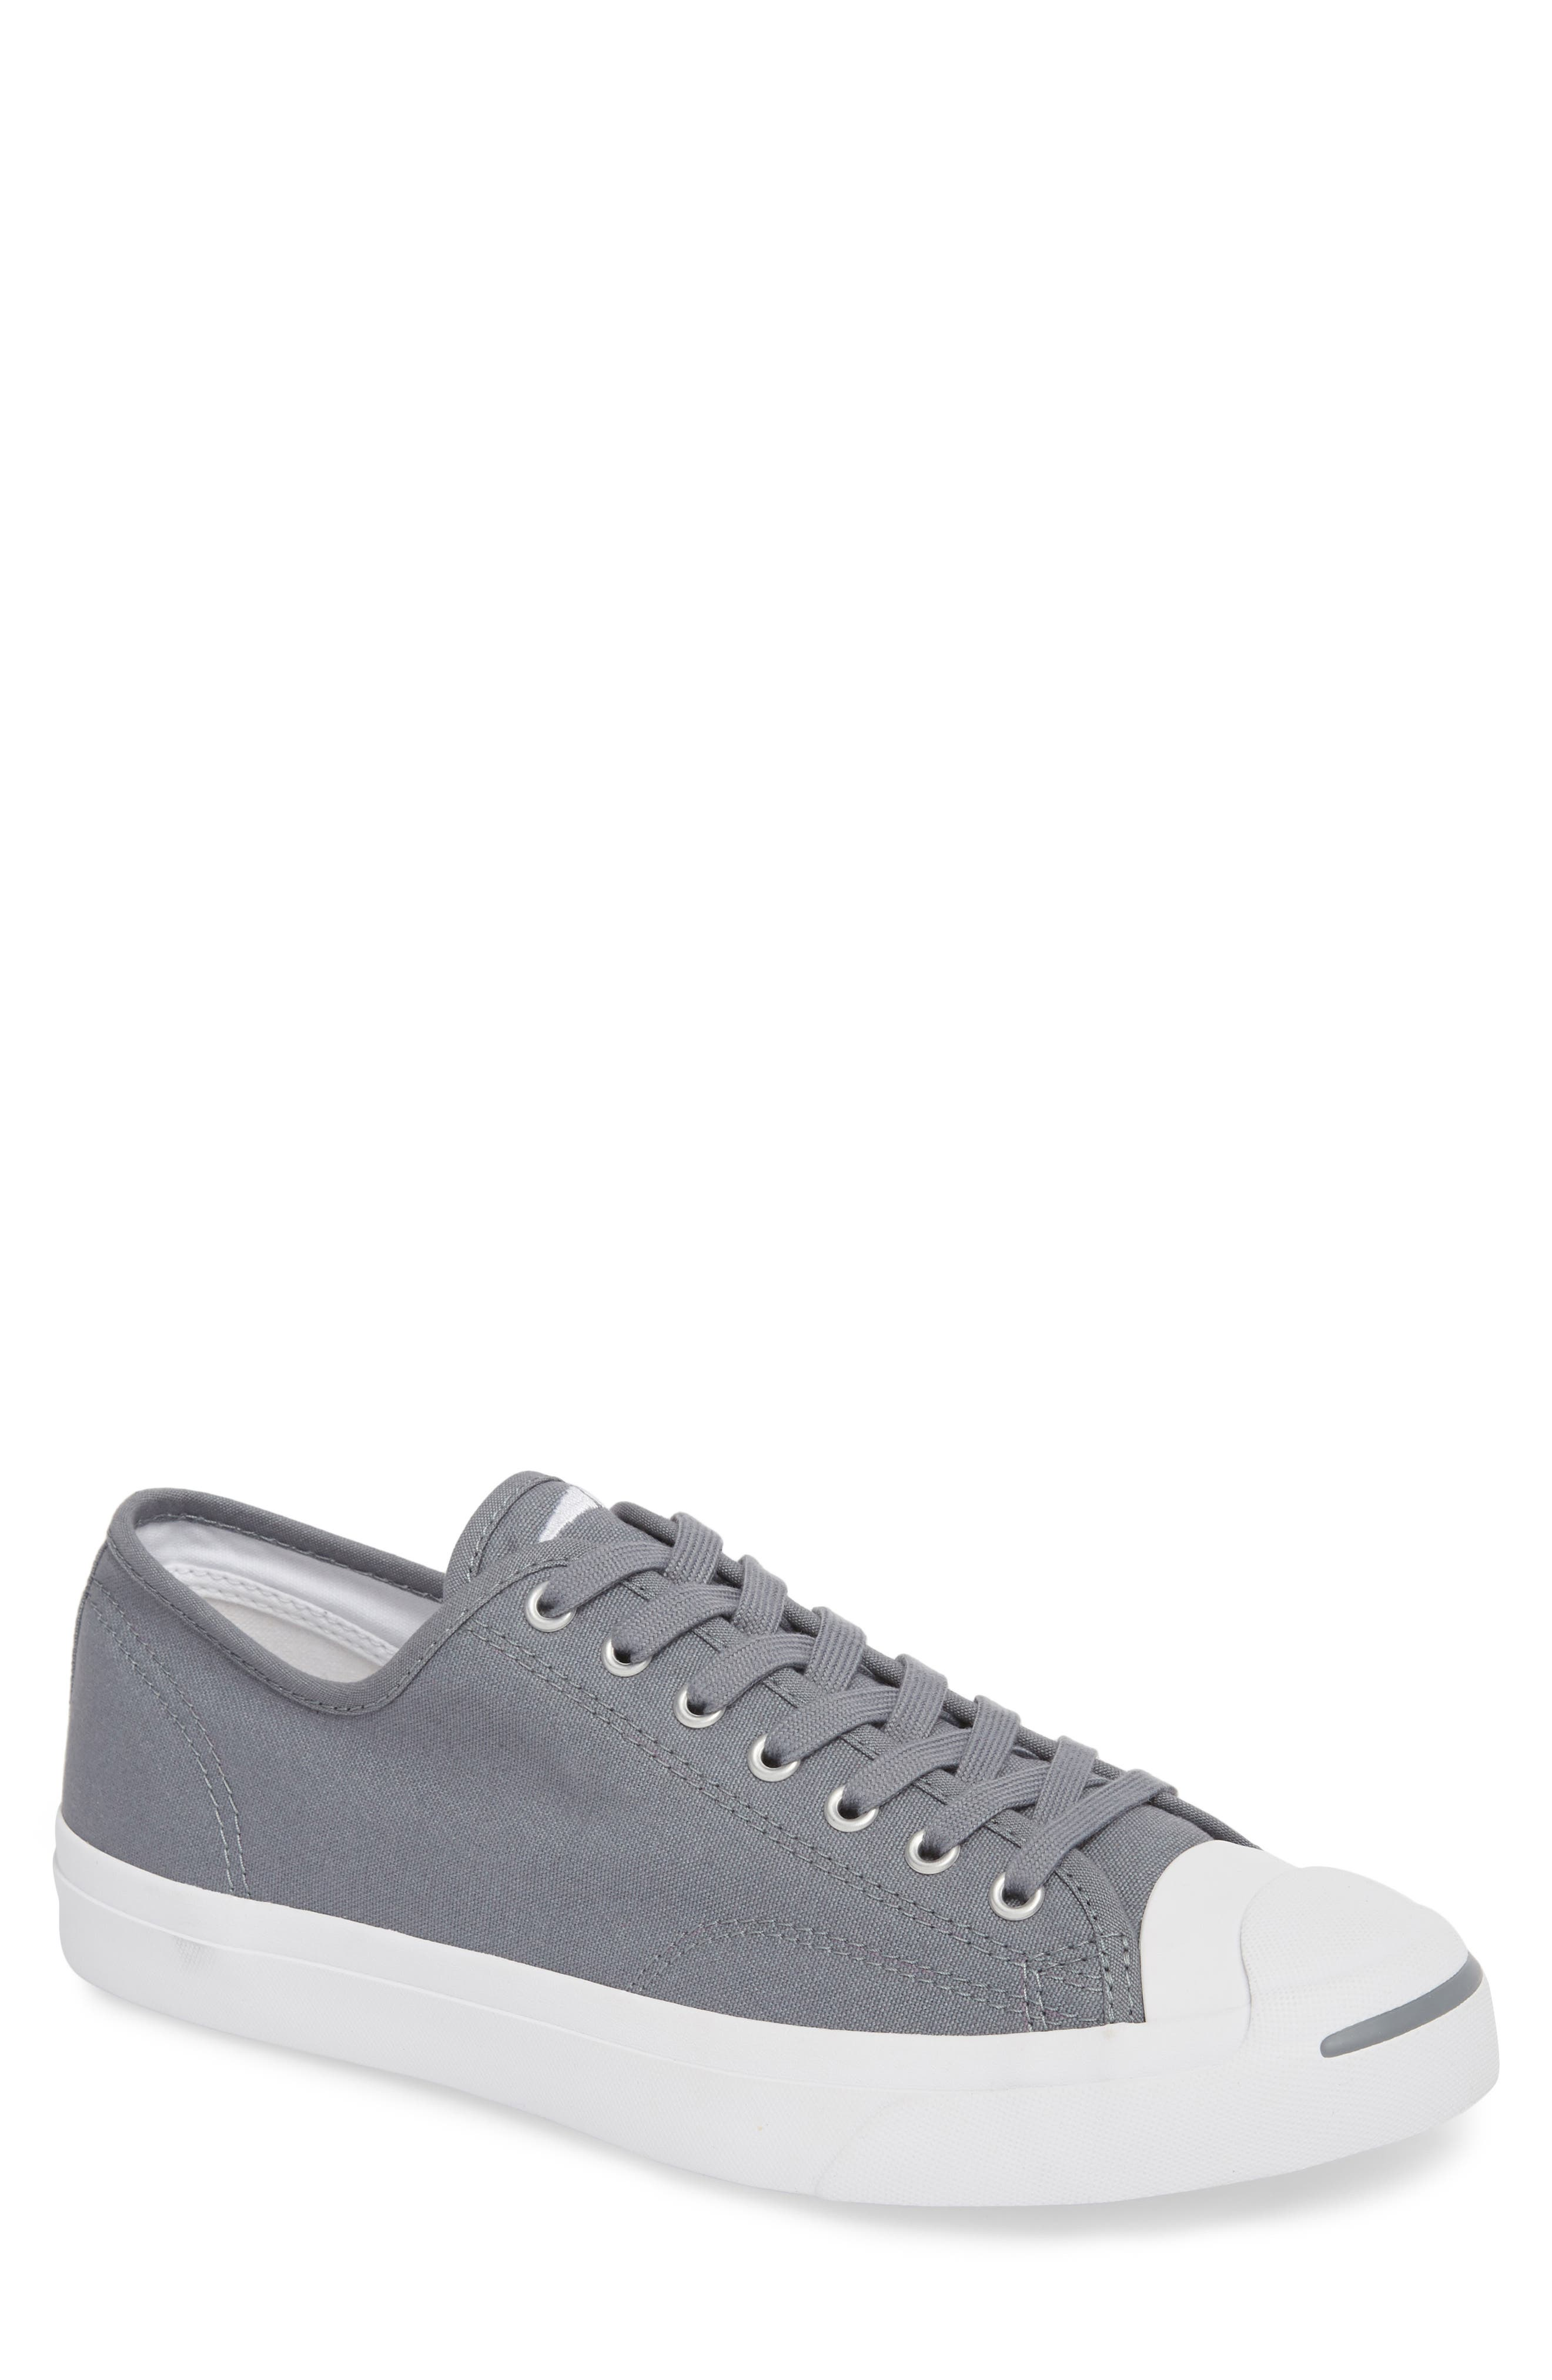 'Jack Purcell' Sneaker,                         Main,                         color, Cool Grey Canvas